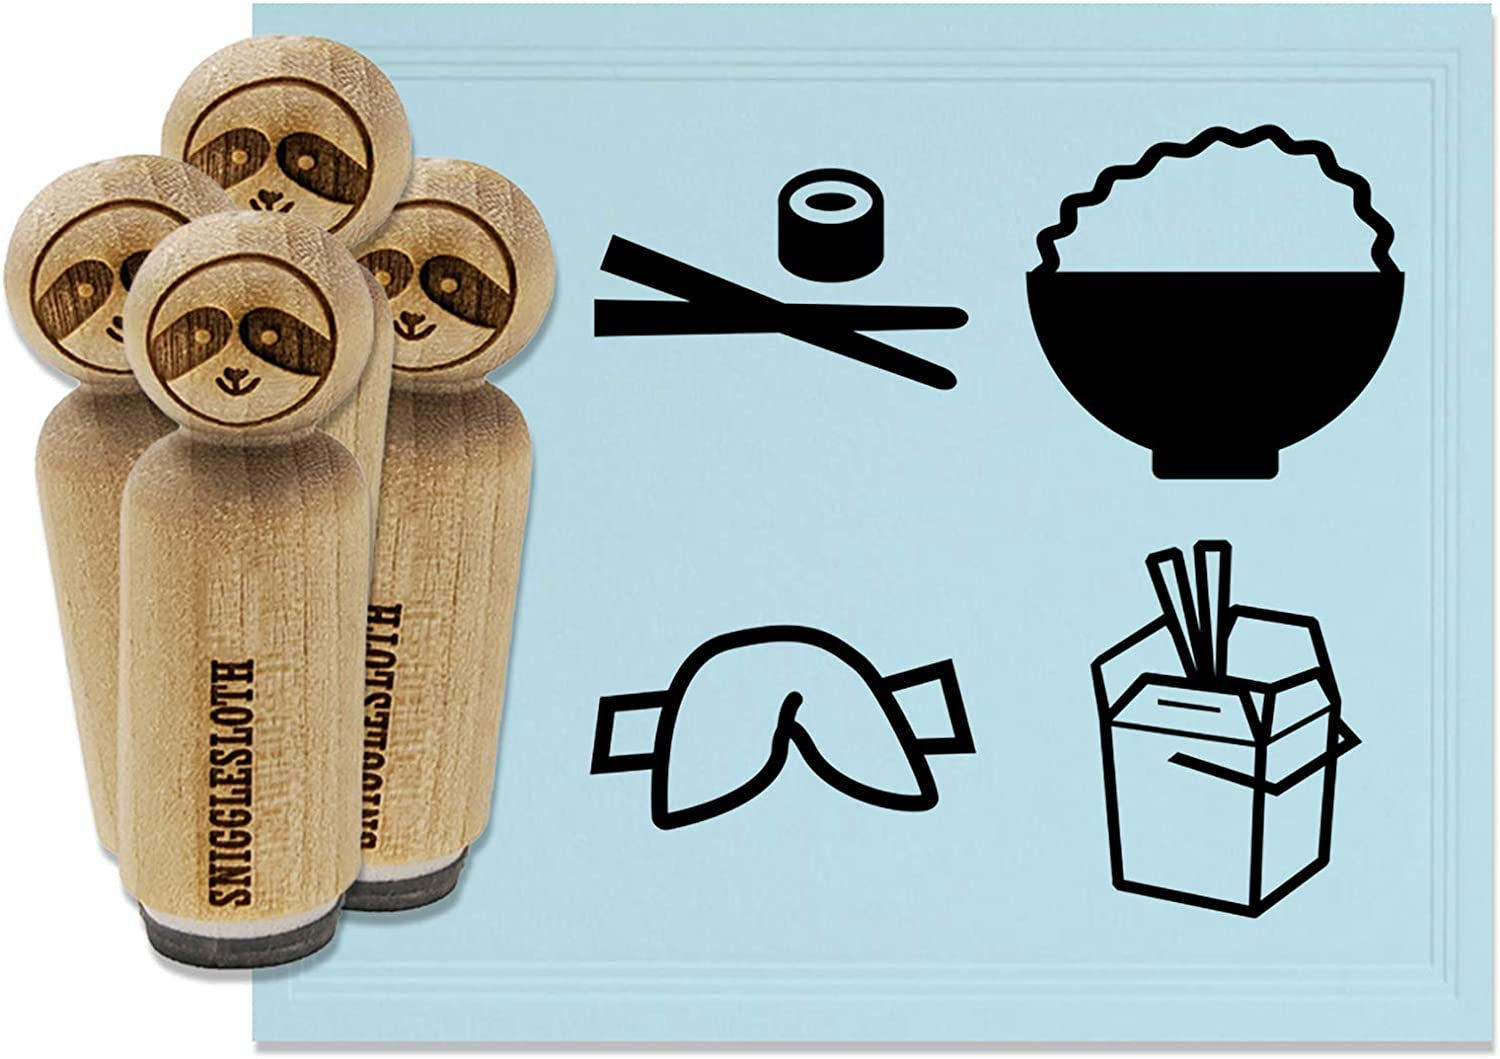 Chinese Food Take Out Takeout Box Delivery Chopsticks Rice Fortune Cookie Rubber Stamp Set for Stamping Crafting Planners - 1-1/4 Inch Large